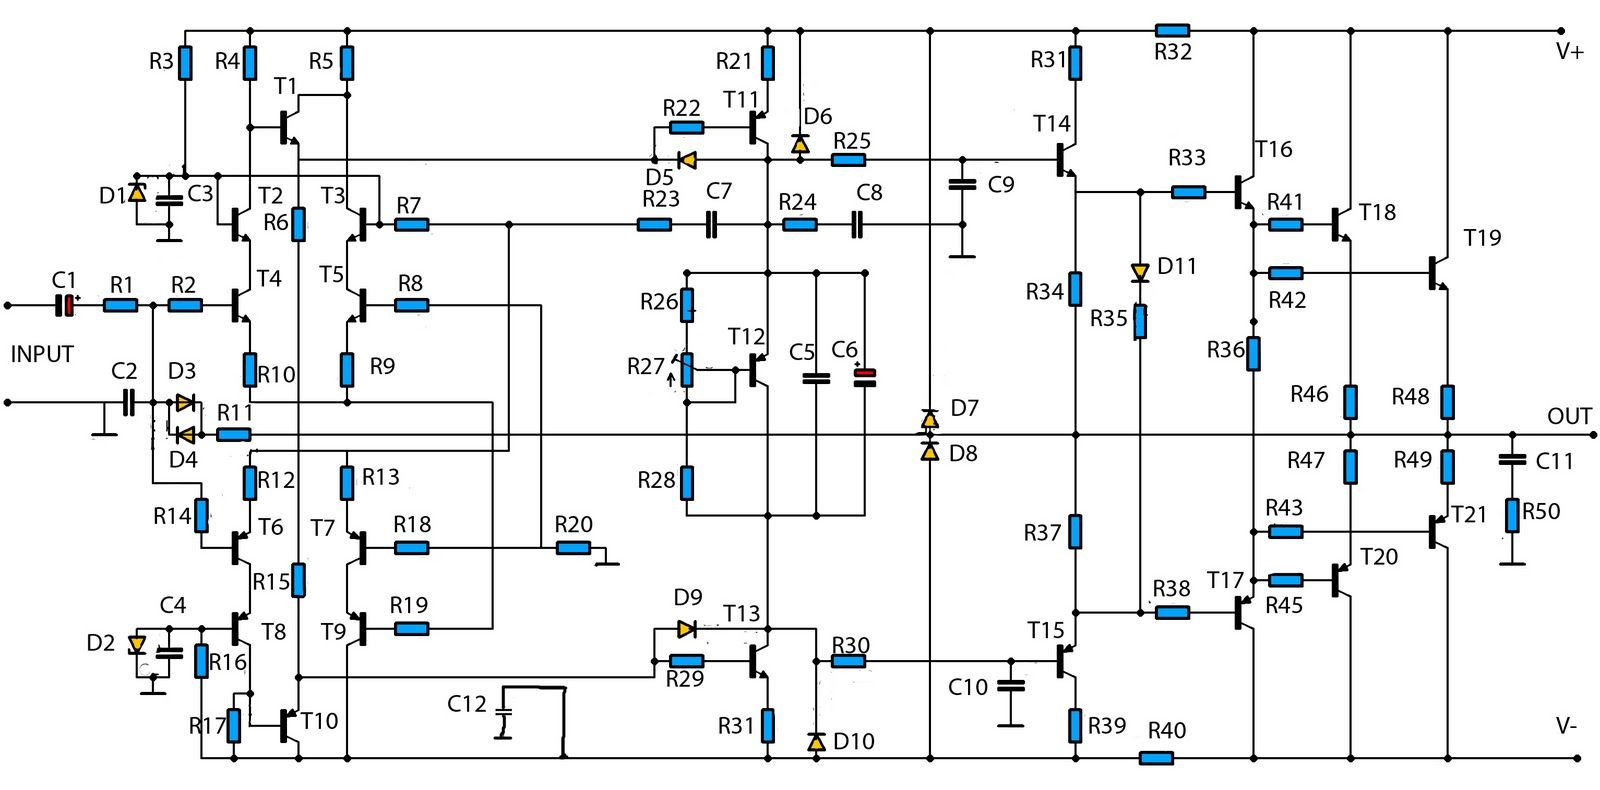 audio amplifier circuit diagram with layout 2003 honda accord engine power schematic great installation of high data wiring detailed rh gol66e aahorn de pdf